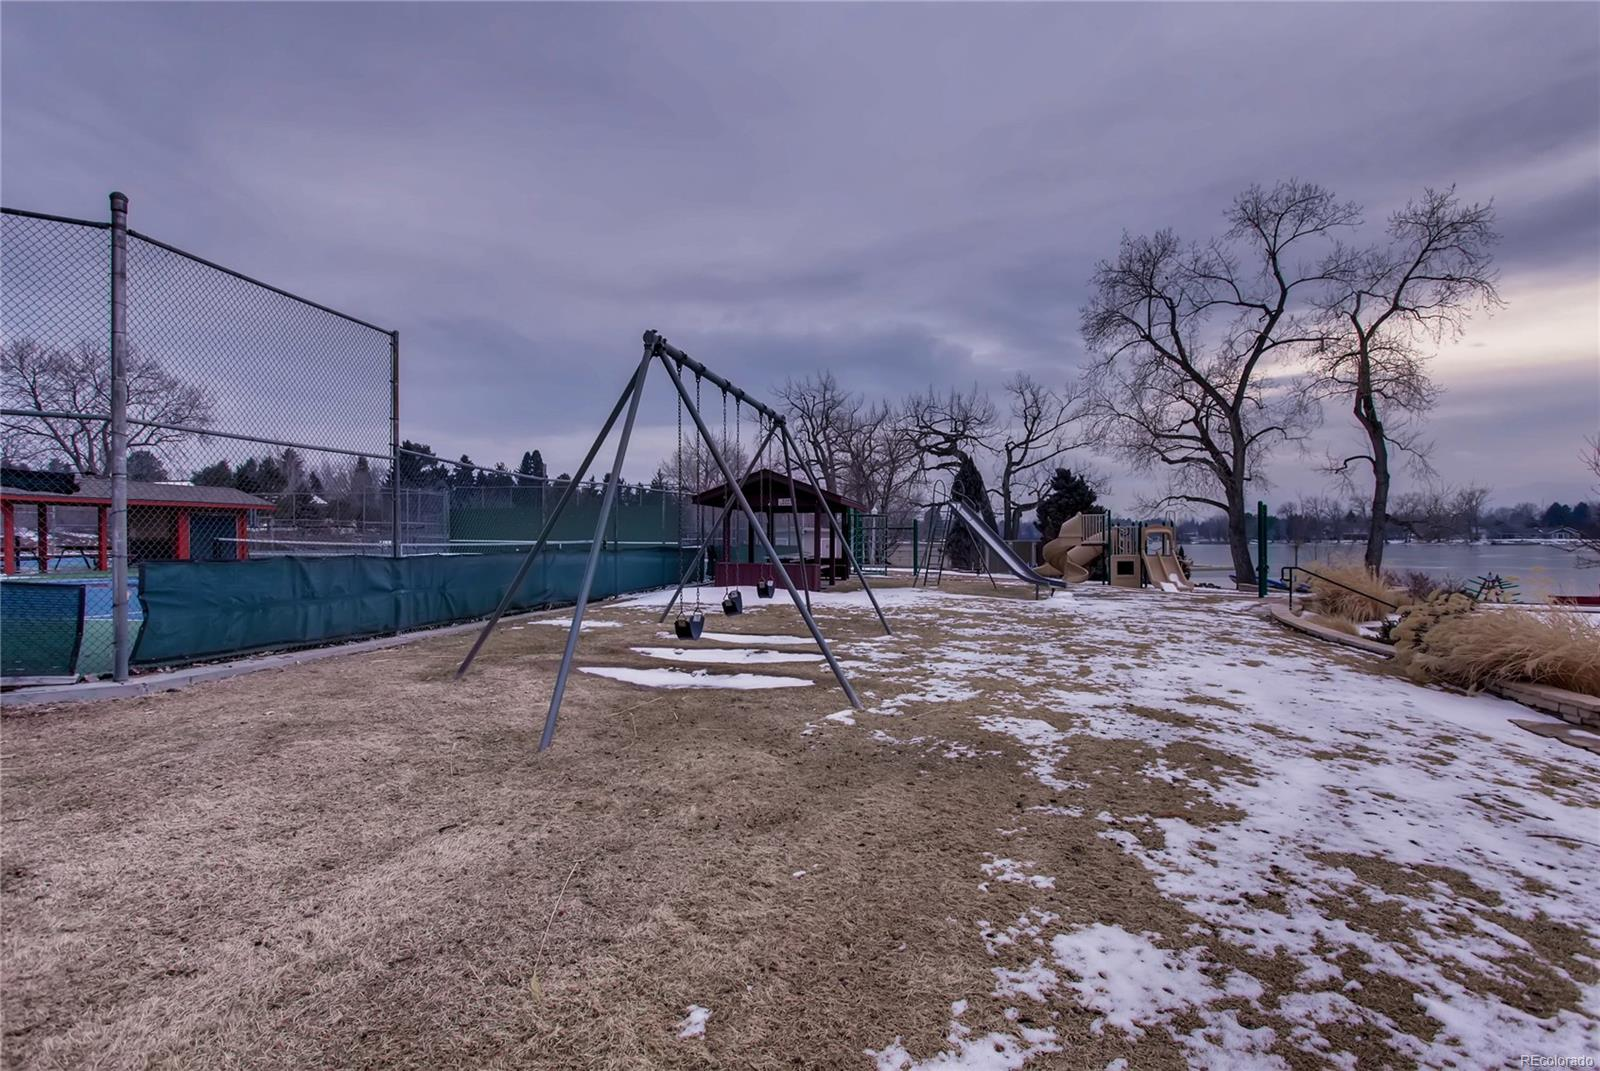 Playground area set between the tennis courts and the beach/lake.